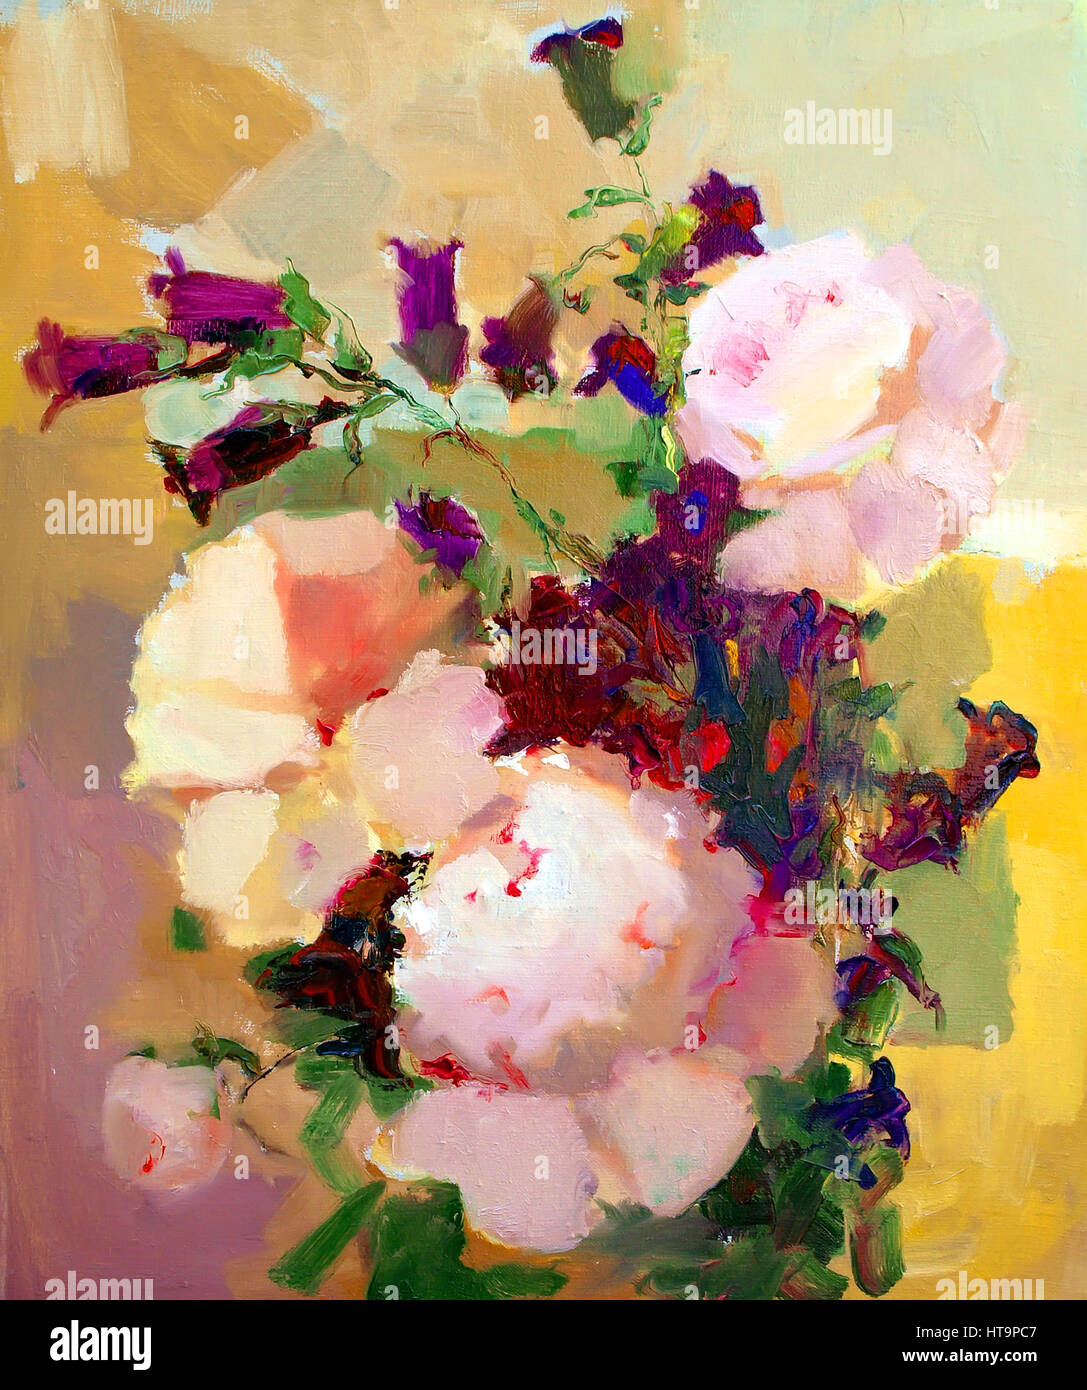 Oil painting of the beautiful flowers stock photo 135439479 alamy oil painting of the beautiful flowers izmirmasajfo